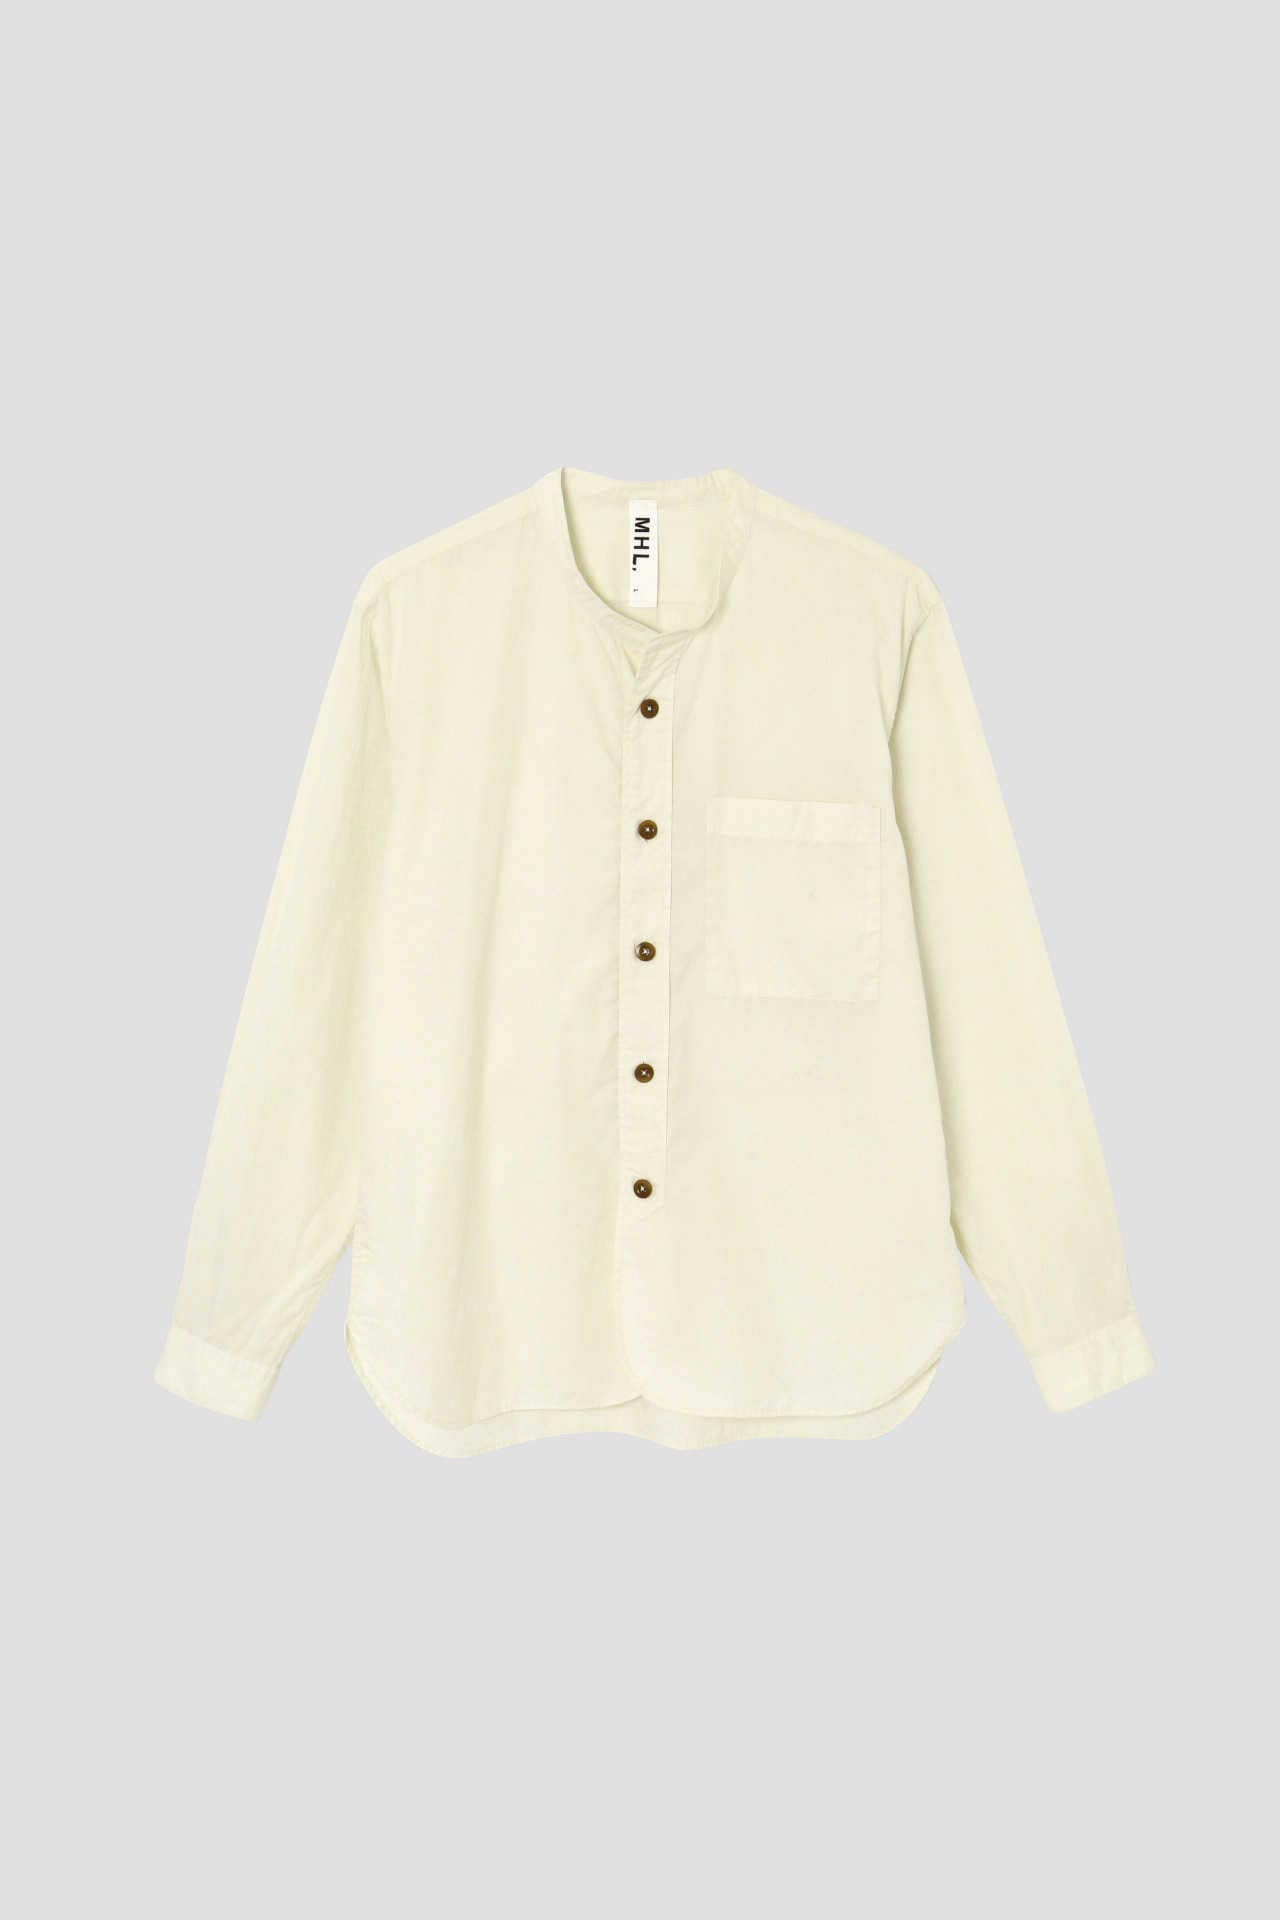 GARMENT DYE BASIC POPLIN(MHL SHOP限定)7